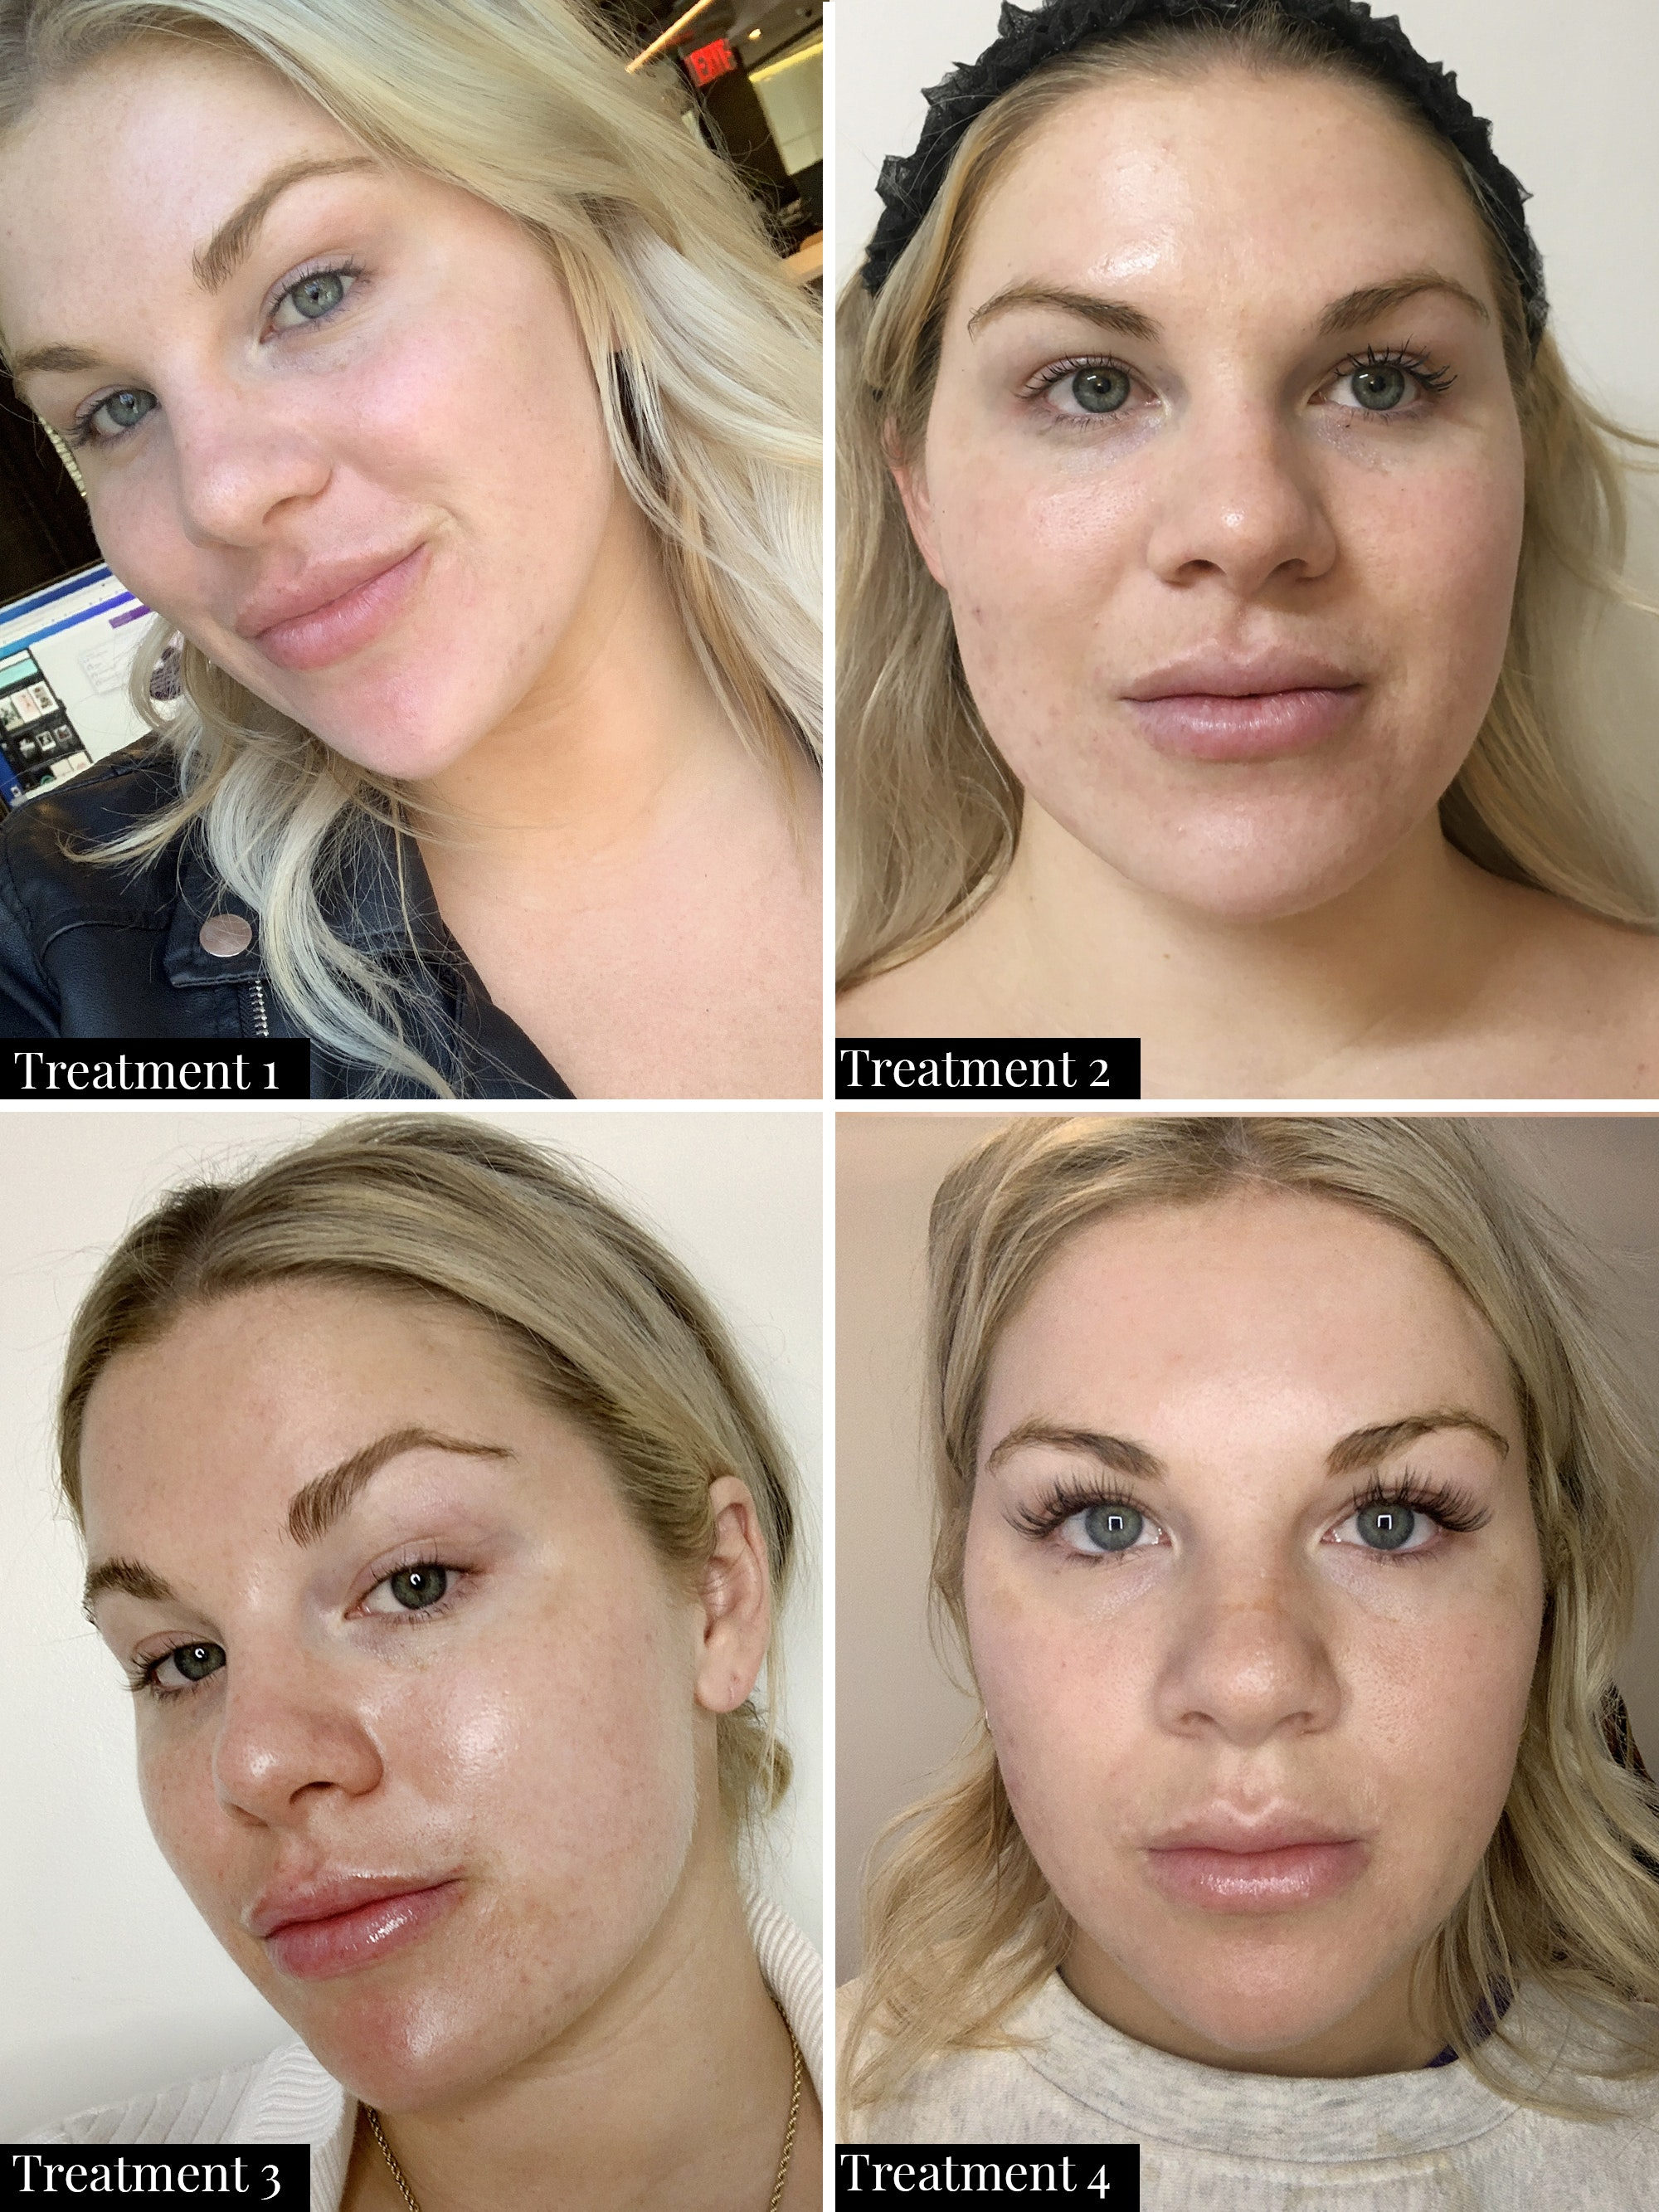 diamondglow facial treatment before and after results after 4 treatments with improved appearance of dark spots, hyperpigmentation, and fine lines and wrinkles.